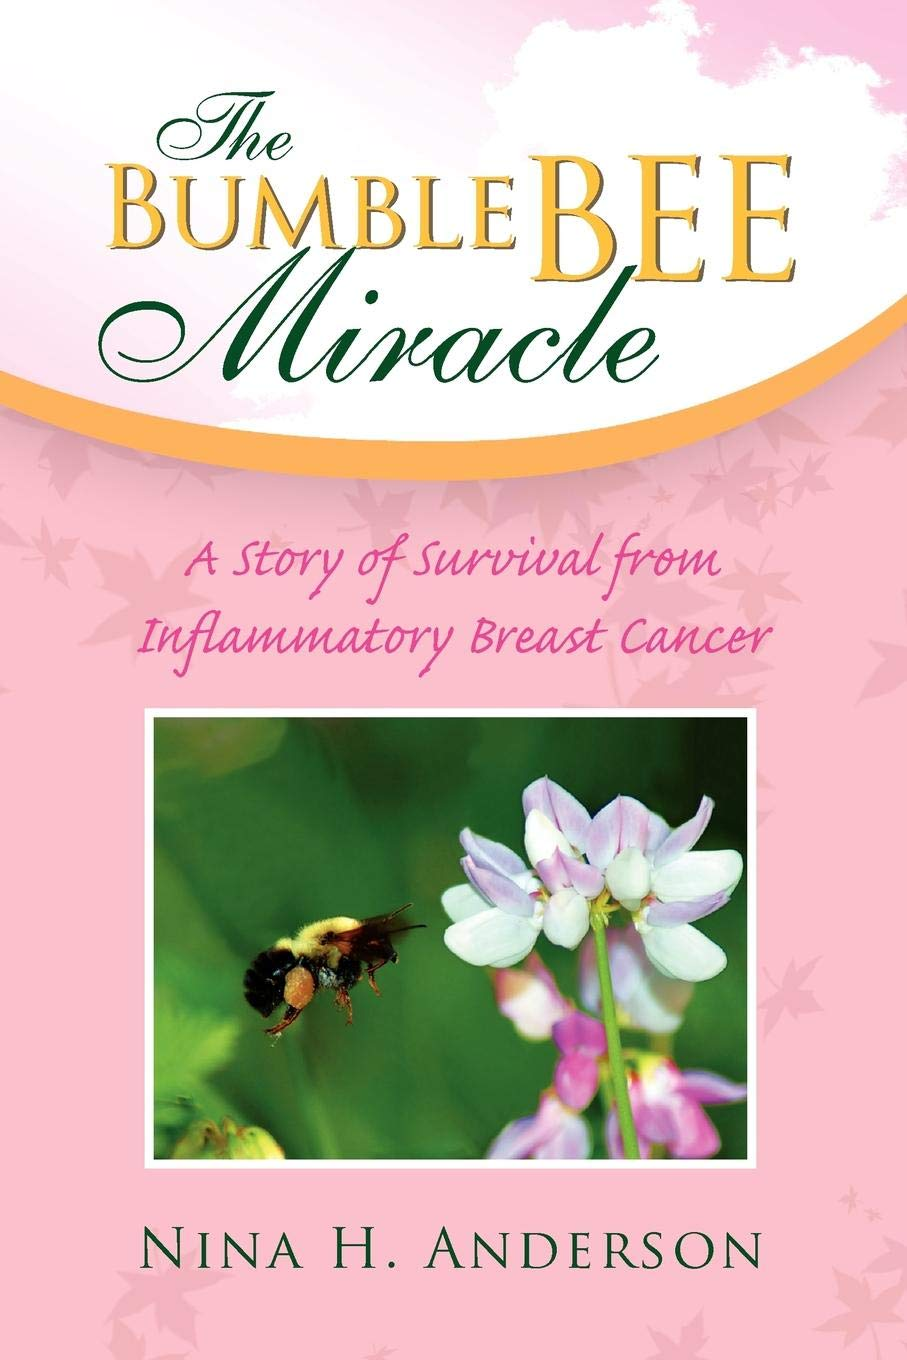 The Bumble Bee Miracle